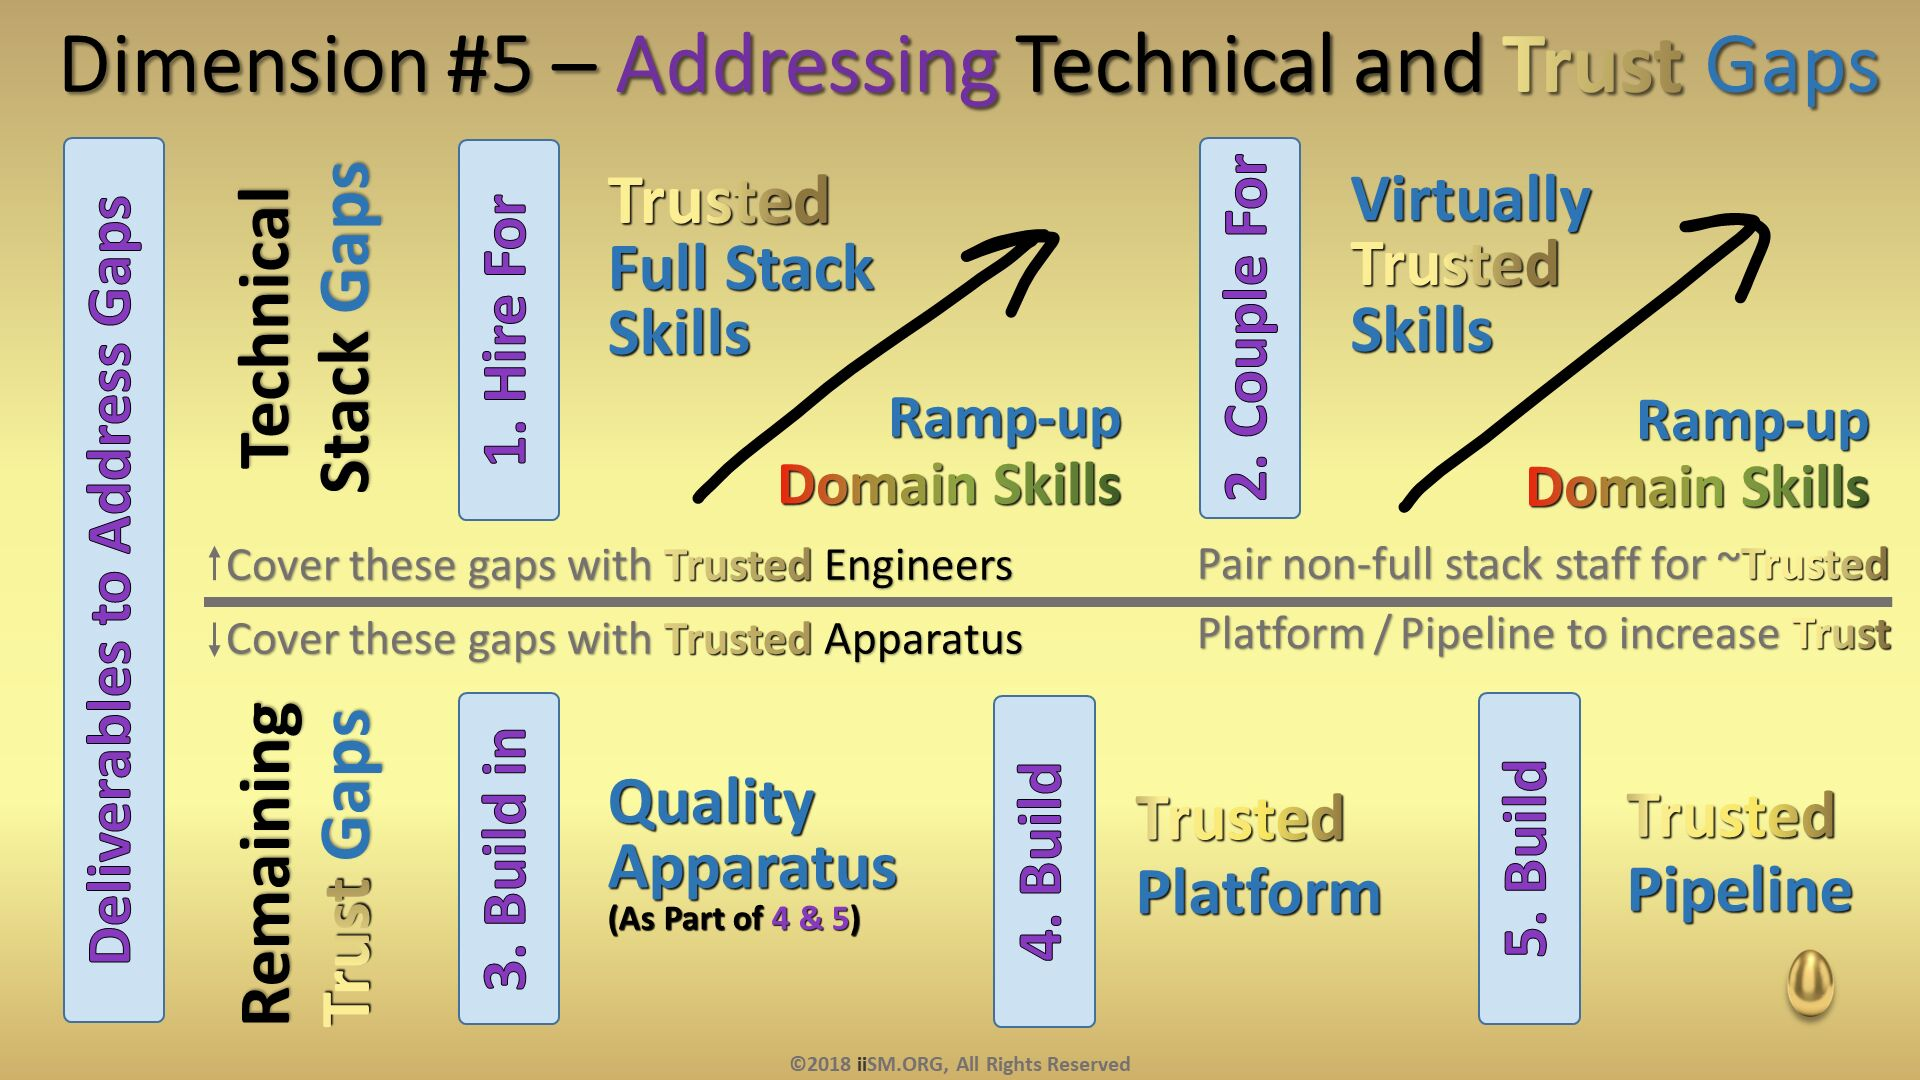 Platform / Pipeline to increase Trust. Technical Stack Gaps. Remaining Trust Gaps. Dimension #5 – Addressing Technical and Trust Gaps. 1. Hire For. 2. Couple For. Trusted Full StackSkills. Ramp-upDomain Skills. Virtually TrustedSkills. Ramp-upDomain Skills. 3. Build in. 4. Build. Quality Apparatus (As Part of 4 & 5). Trusted Platform. 5. Build. Trusted Pipeline. Deliverables to Address Gaps. Cover these gaps with Trusted Engineers. Cover these gaps with Trusted Apparatus. Pair non-full stack staff for ~Trusted. ©2018 iiSM.ORG, All Rights Reserved.